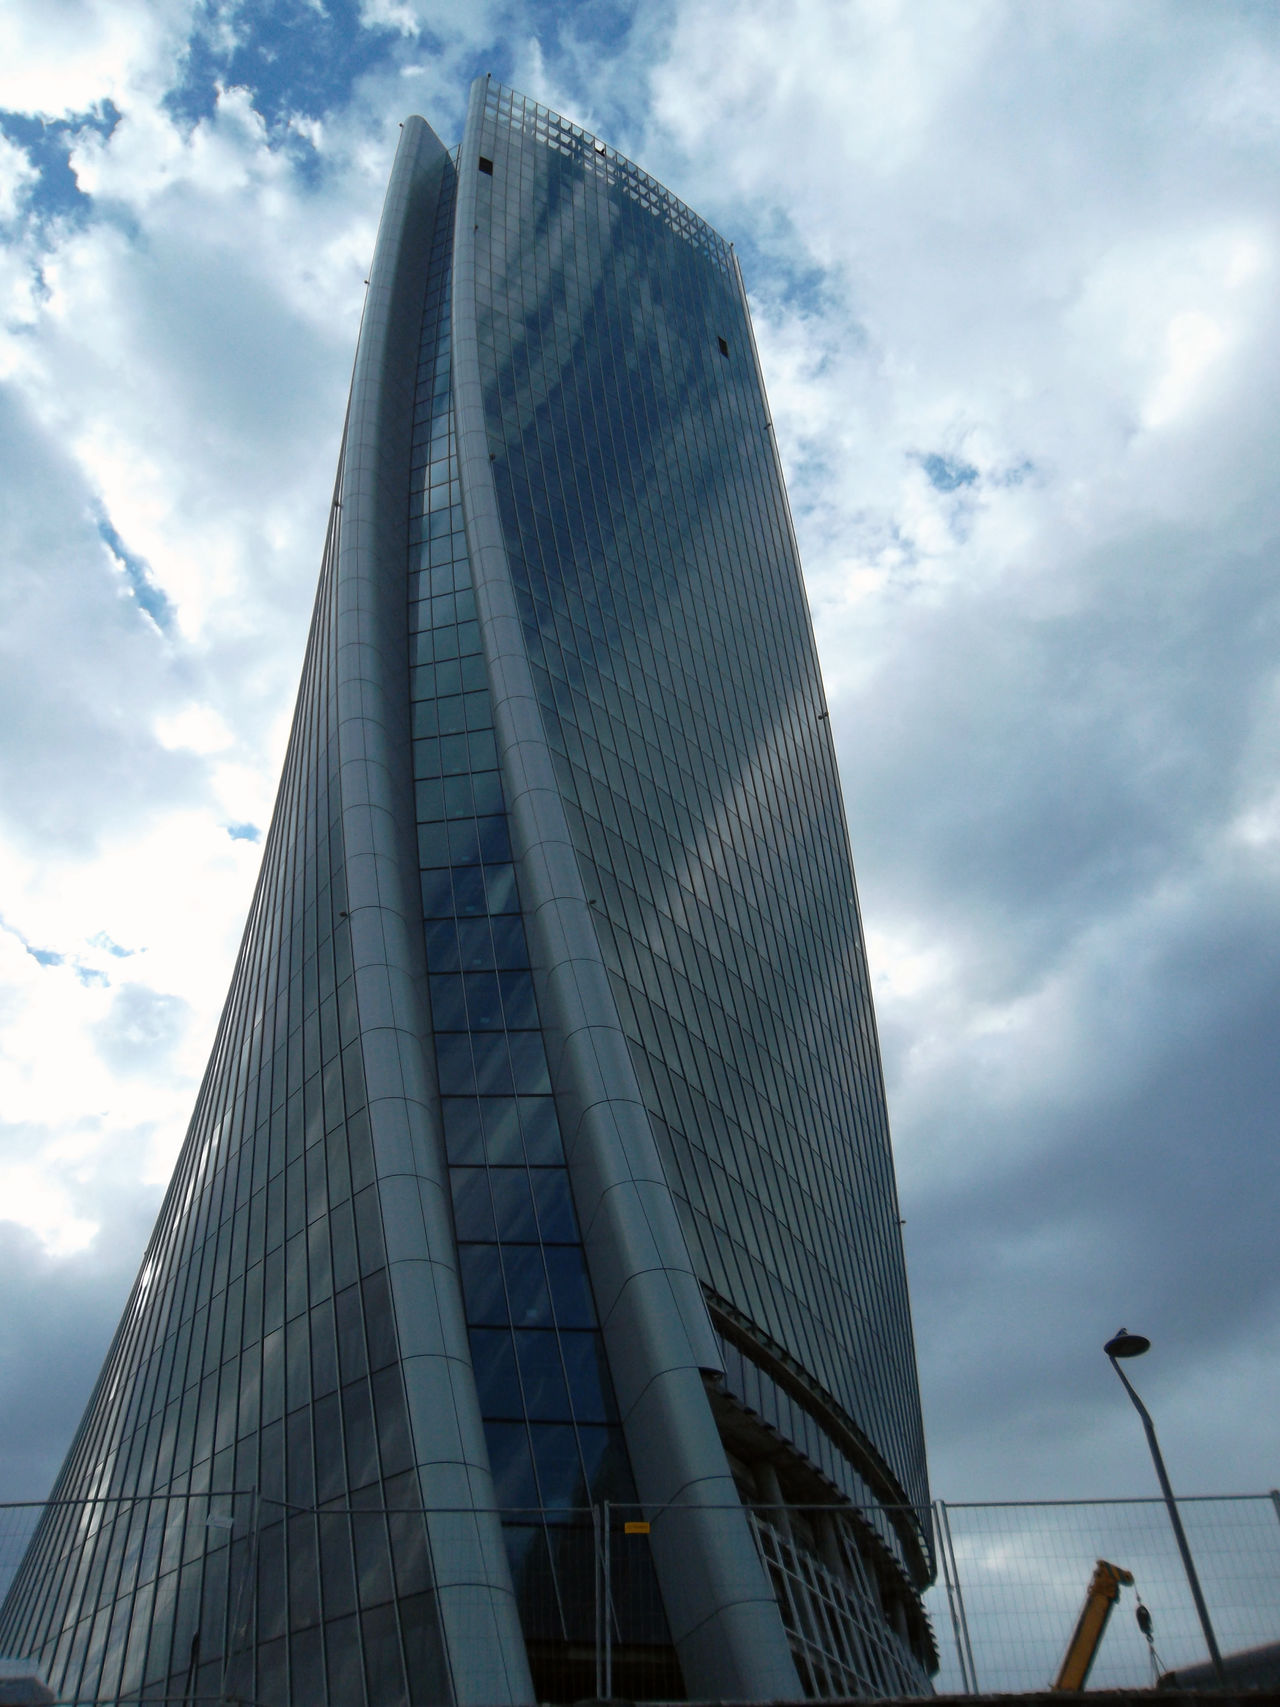 Architecture Building Exterior Built Structure City Cloud - Sky Day Glass Hadid Tower Low Angle View Modern No People Outdoors Reflection Sky Skyscraper Steel Tower Travel Destinations Zaha Hadid